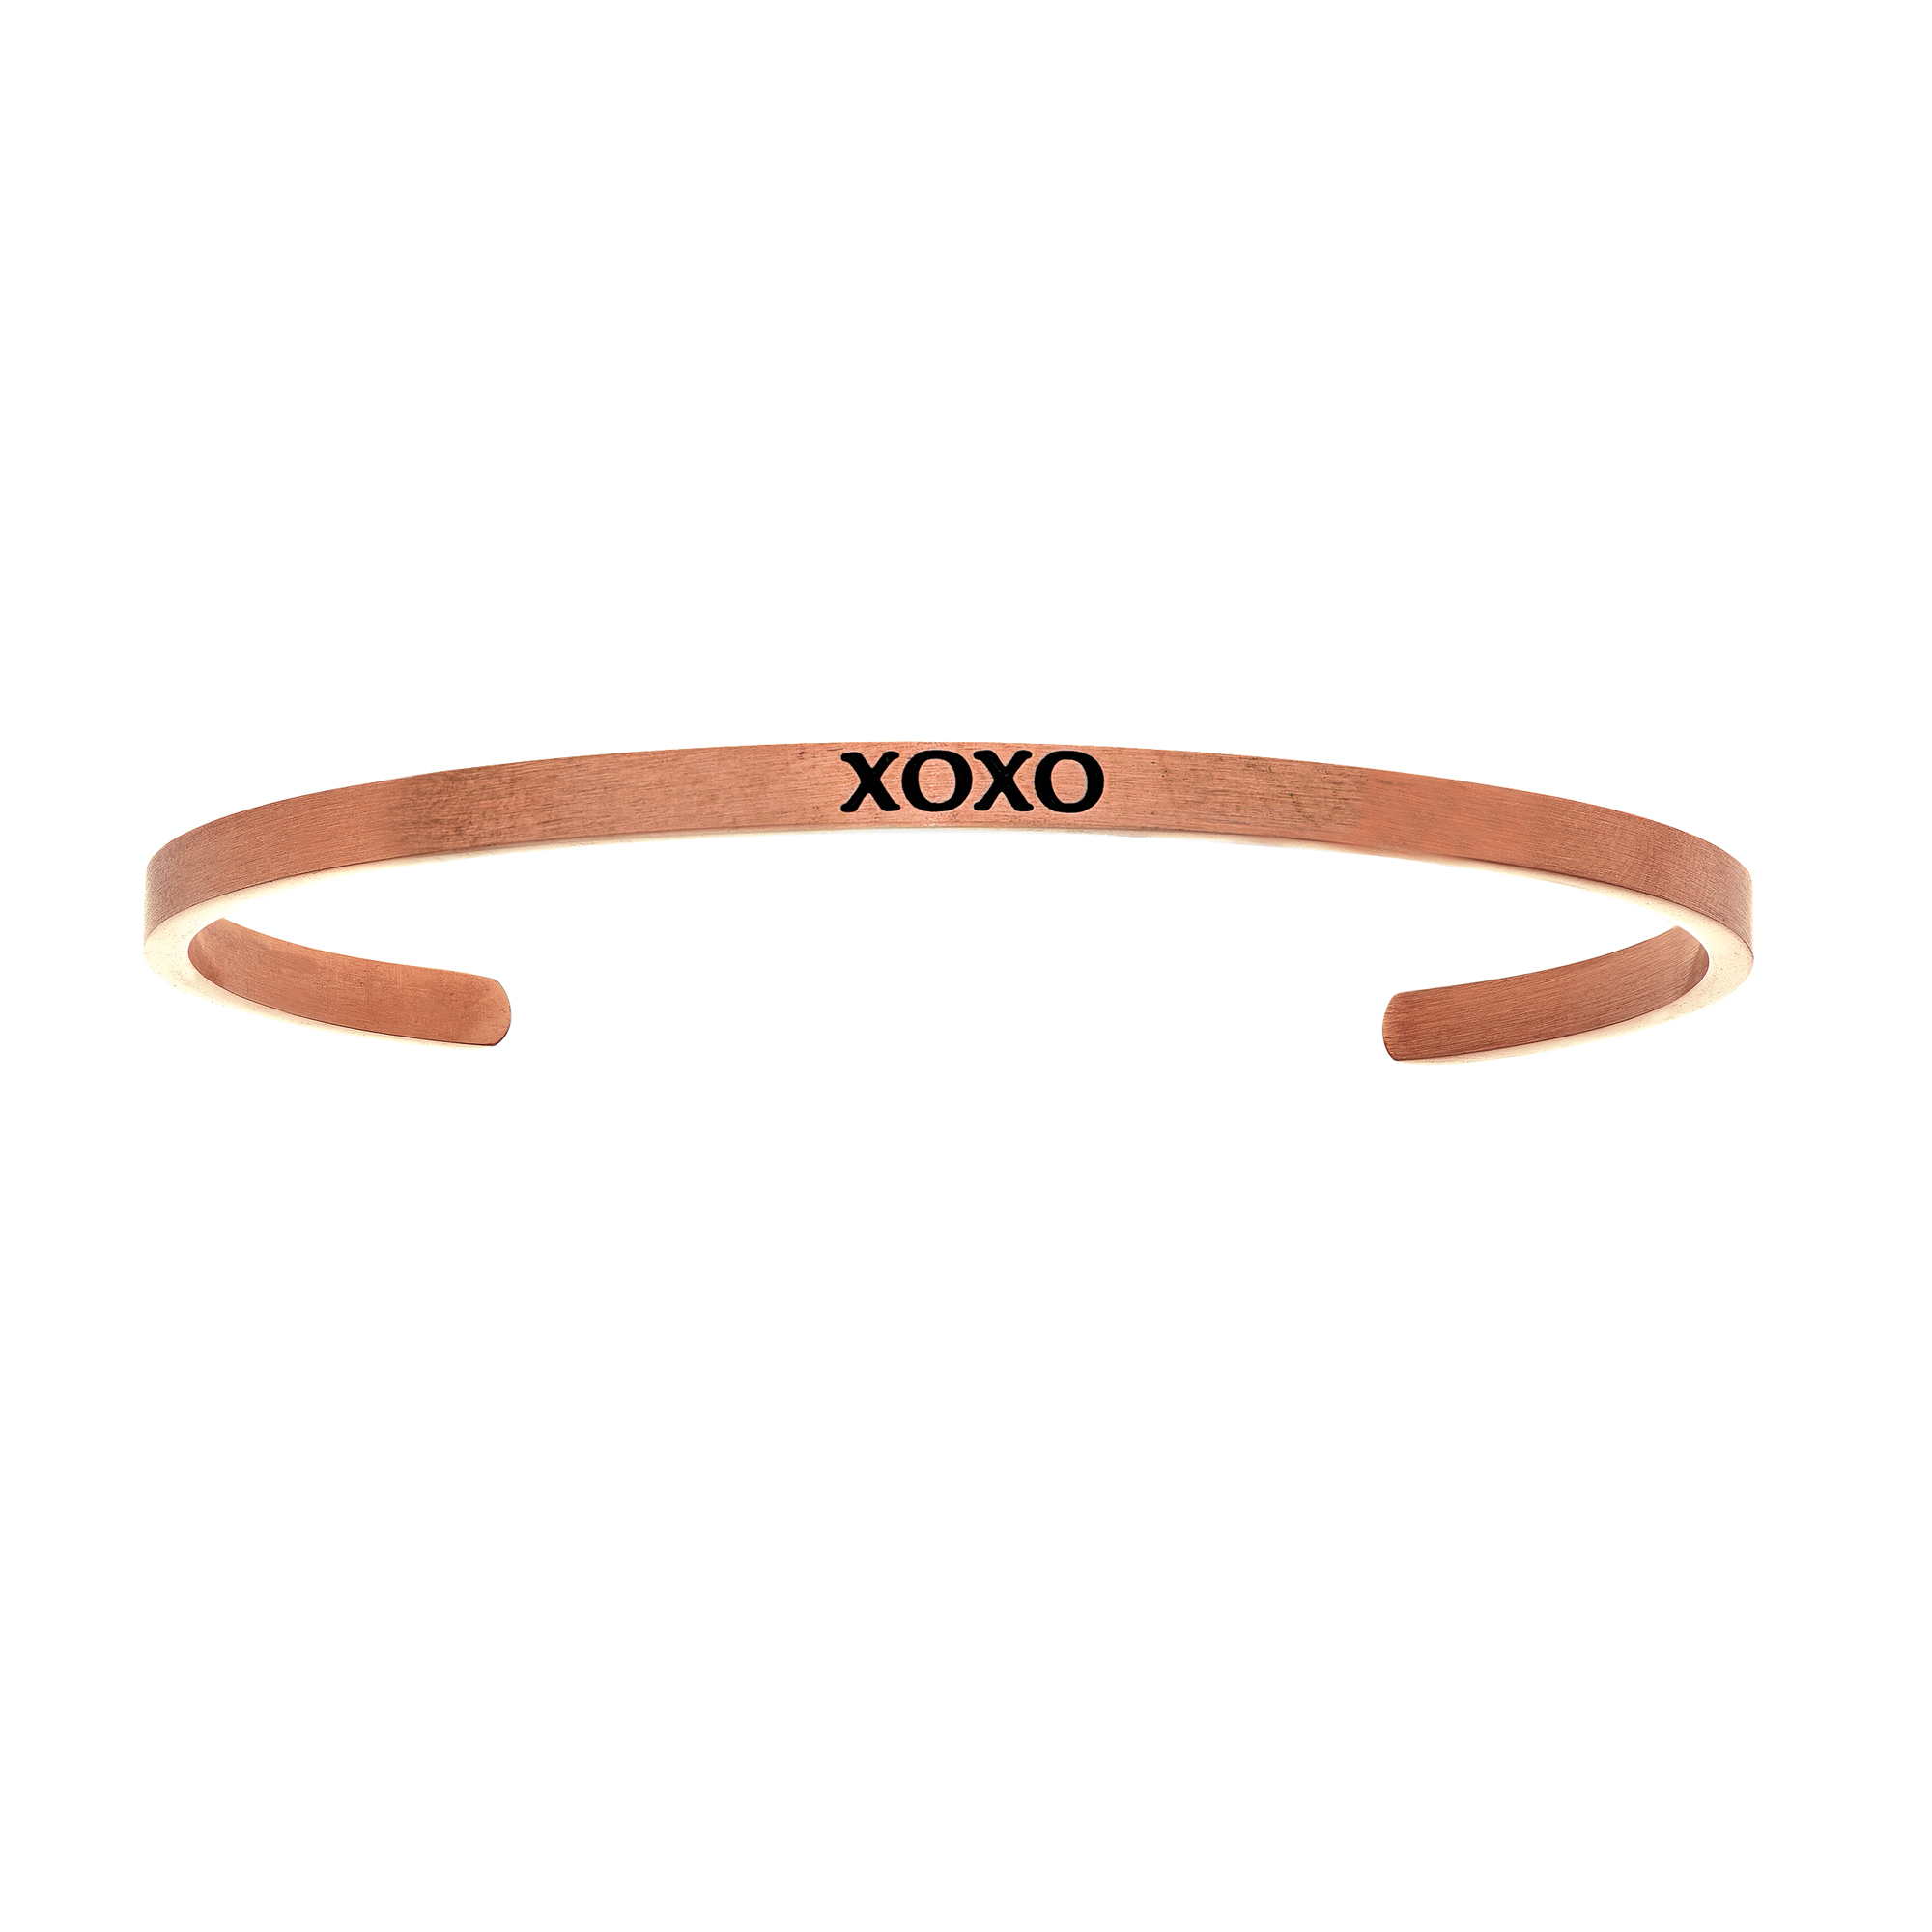 Intuitions Stainless Steel XOXO Diamond Accent Cuff Bangle Bracelet, 7″